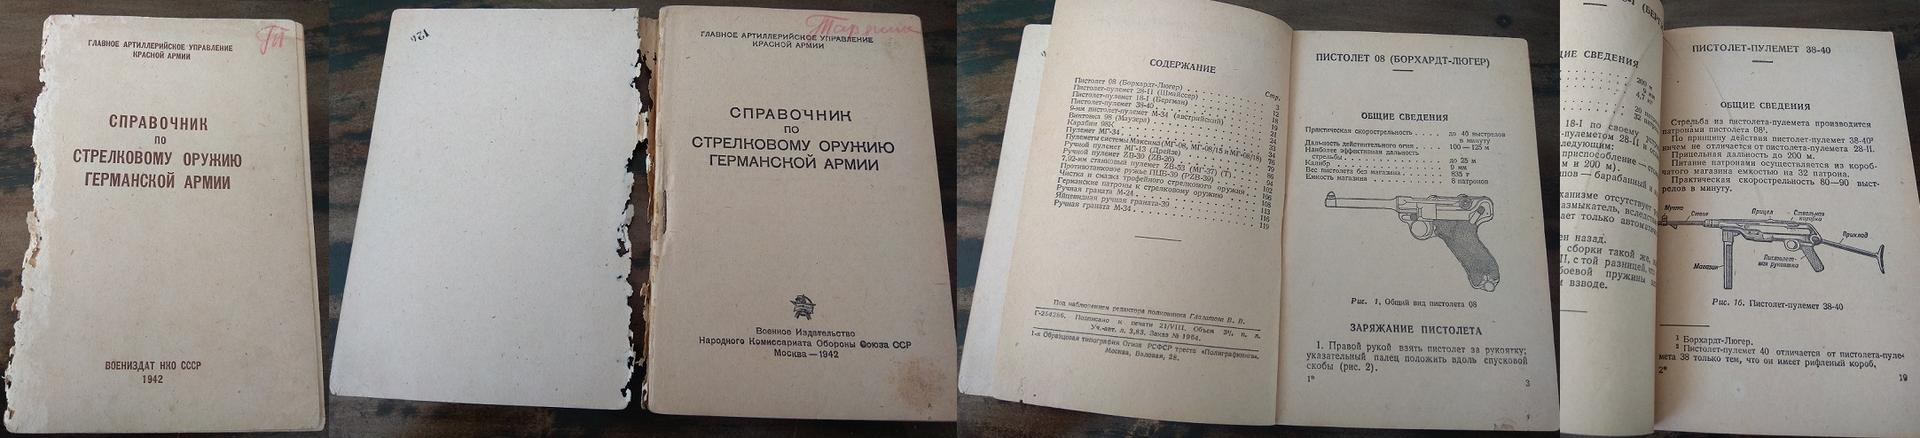 Soviet manual 1942 for captured German weapons